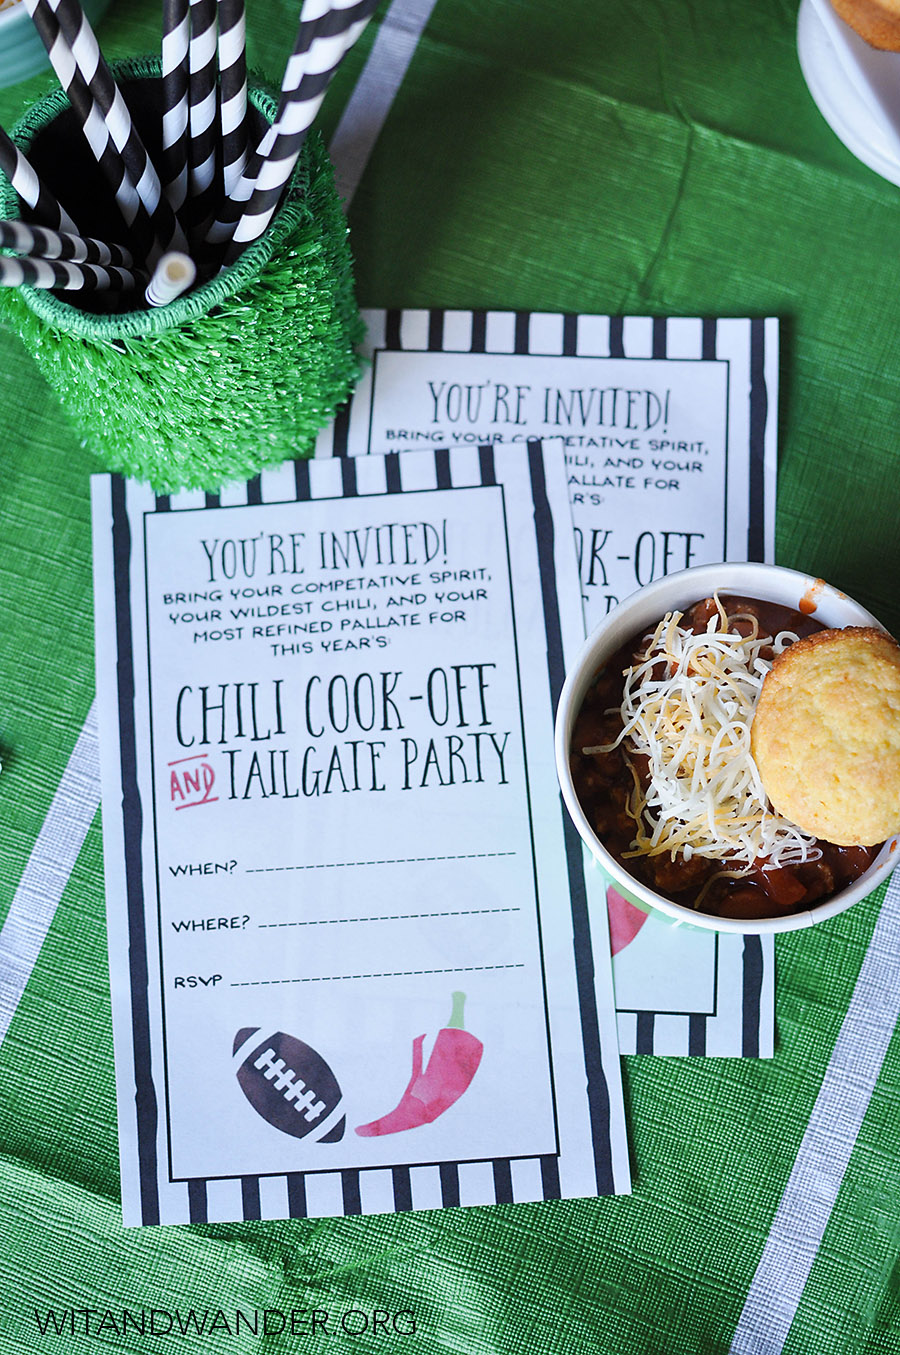 Free Printable Chili Cook Off Invitations | Chili Cook Off Tailgate Party | Wit & Wander